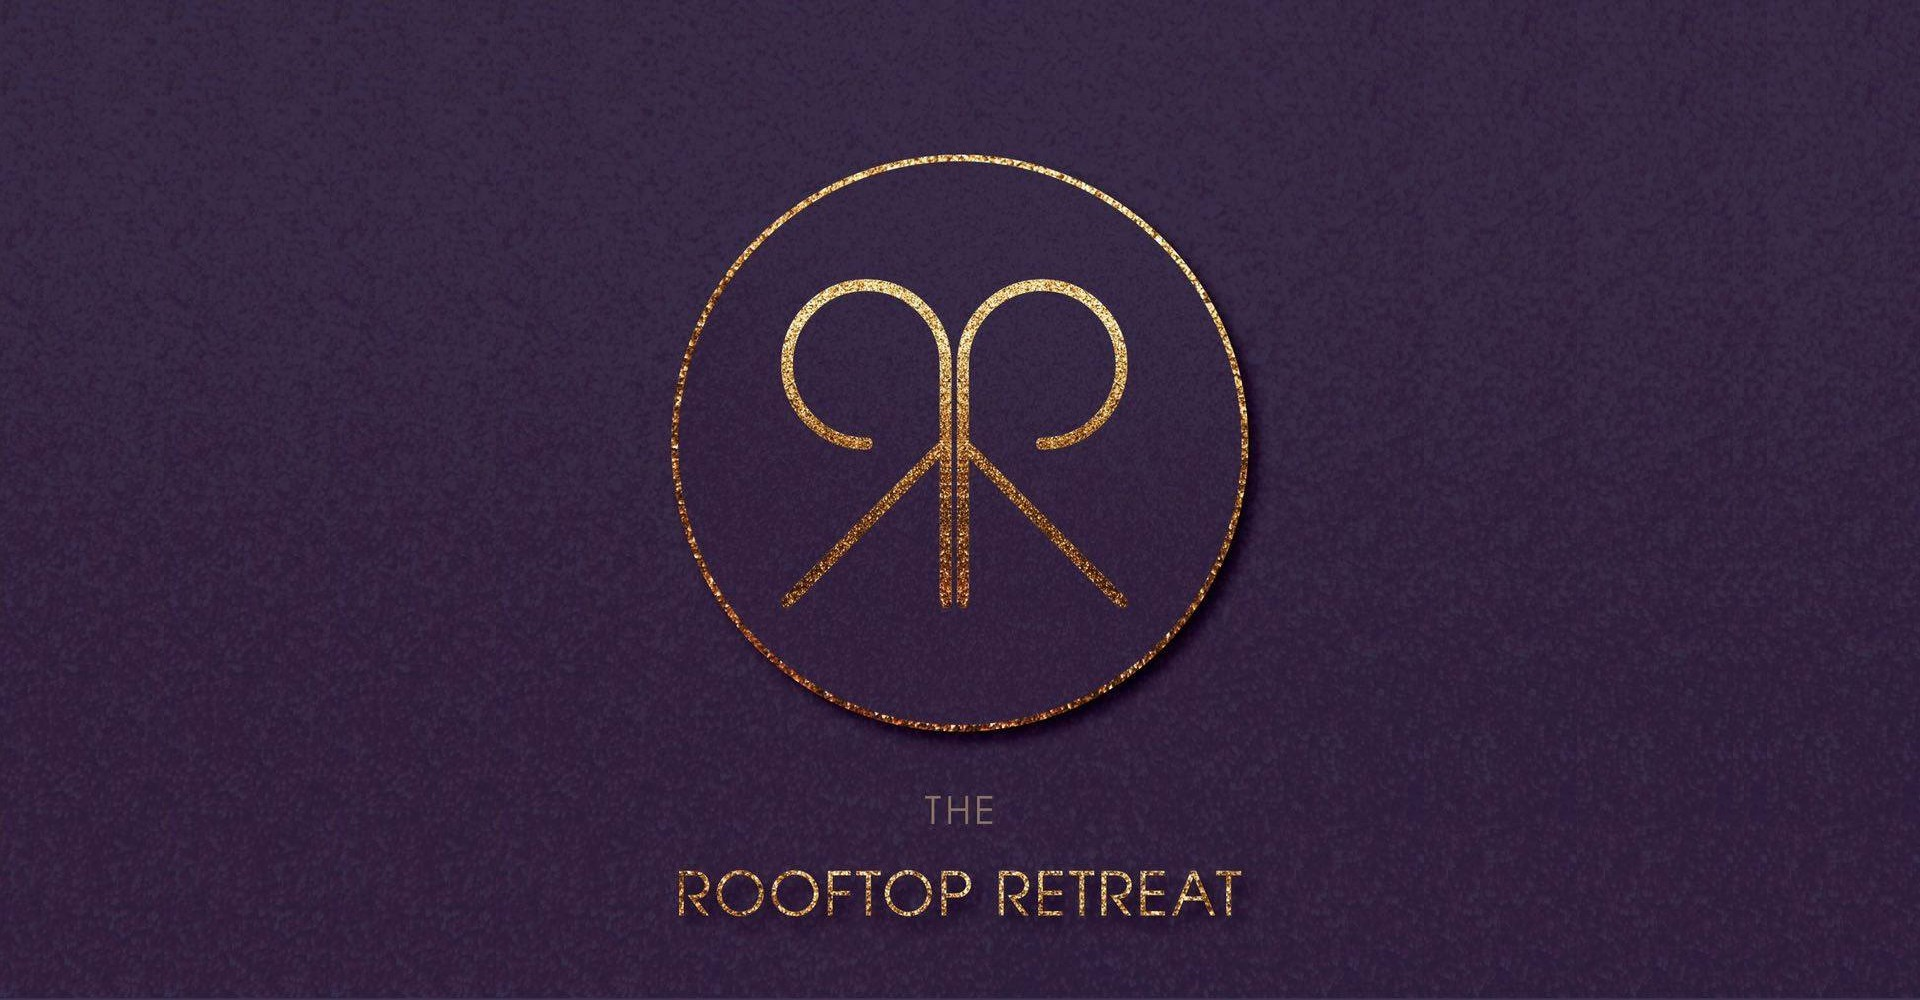 The Rooftop Retreat Beauty Salon in Carlisle